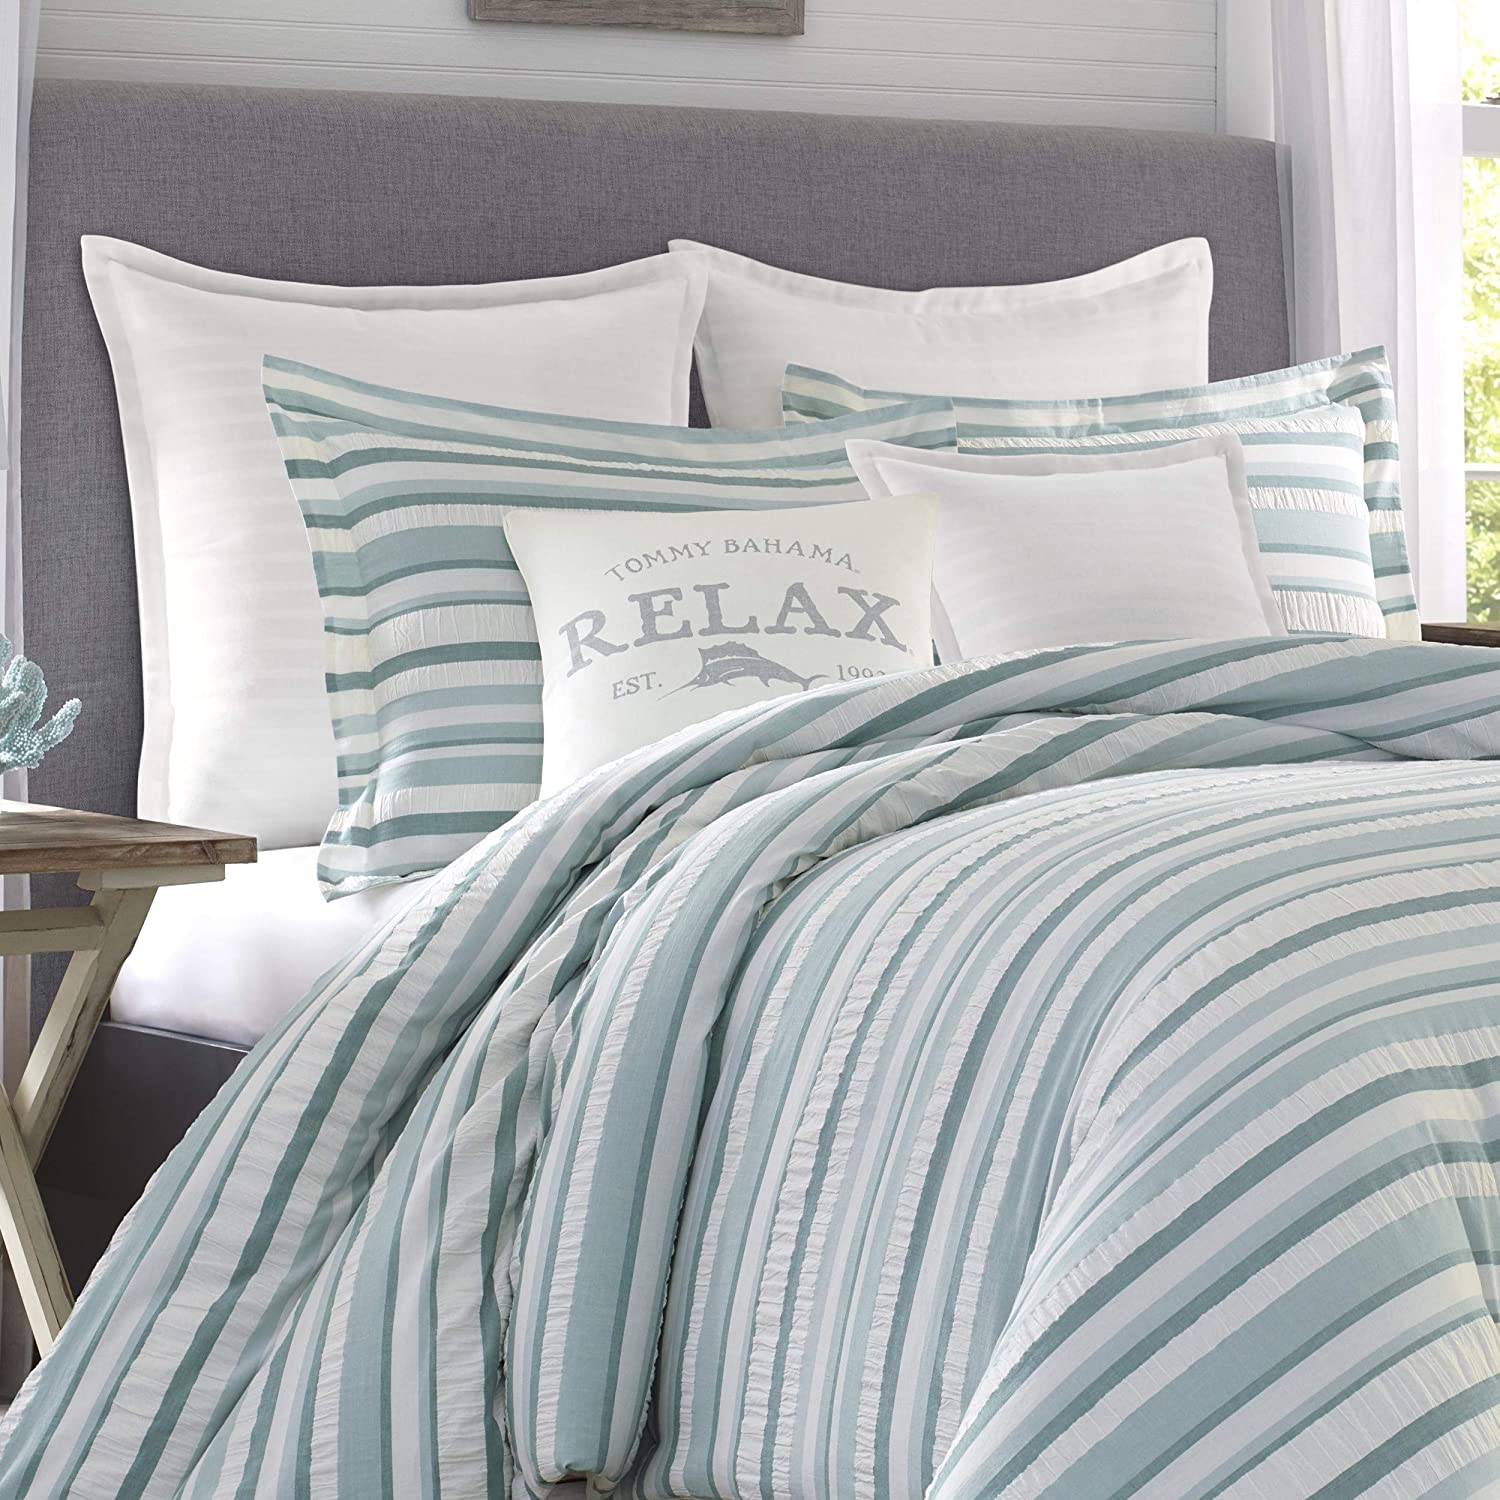 Relax by Tommy Bahama Clearwater Cay Blue Comforter Set Full//Queen